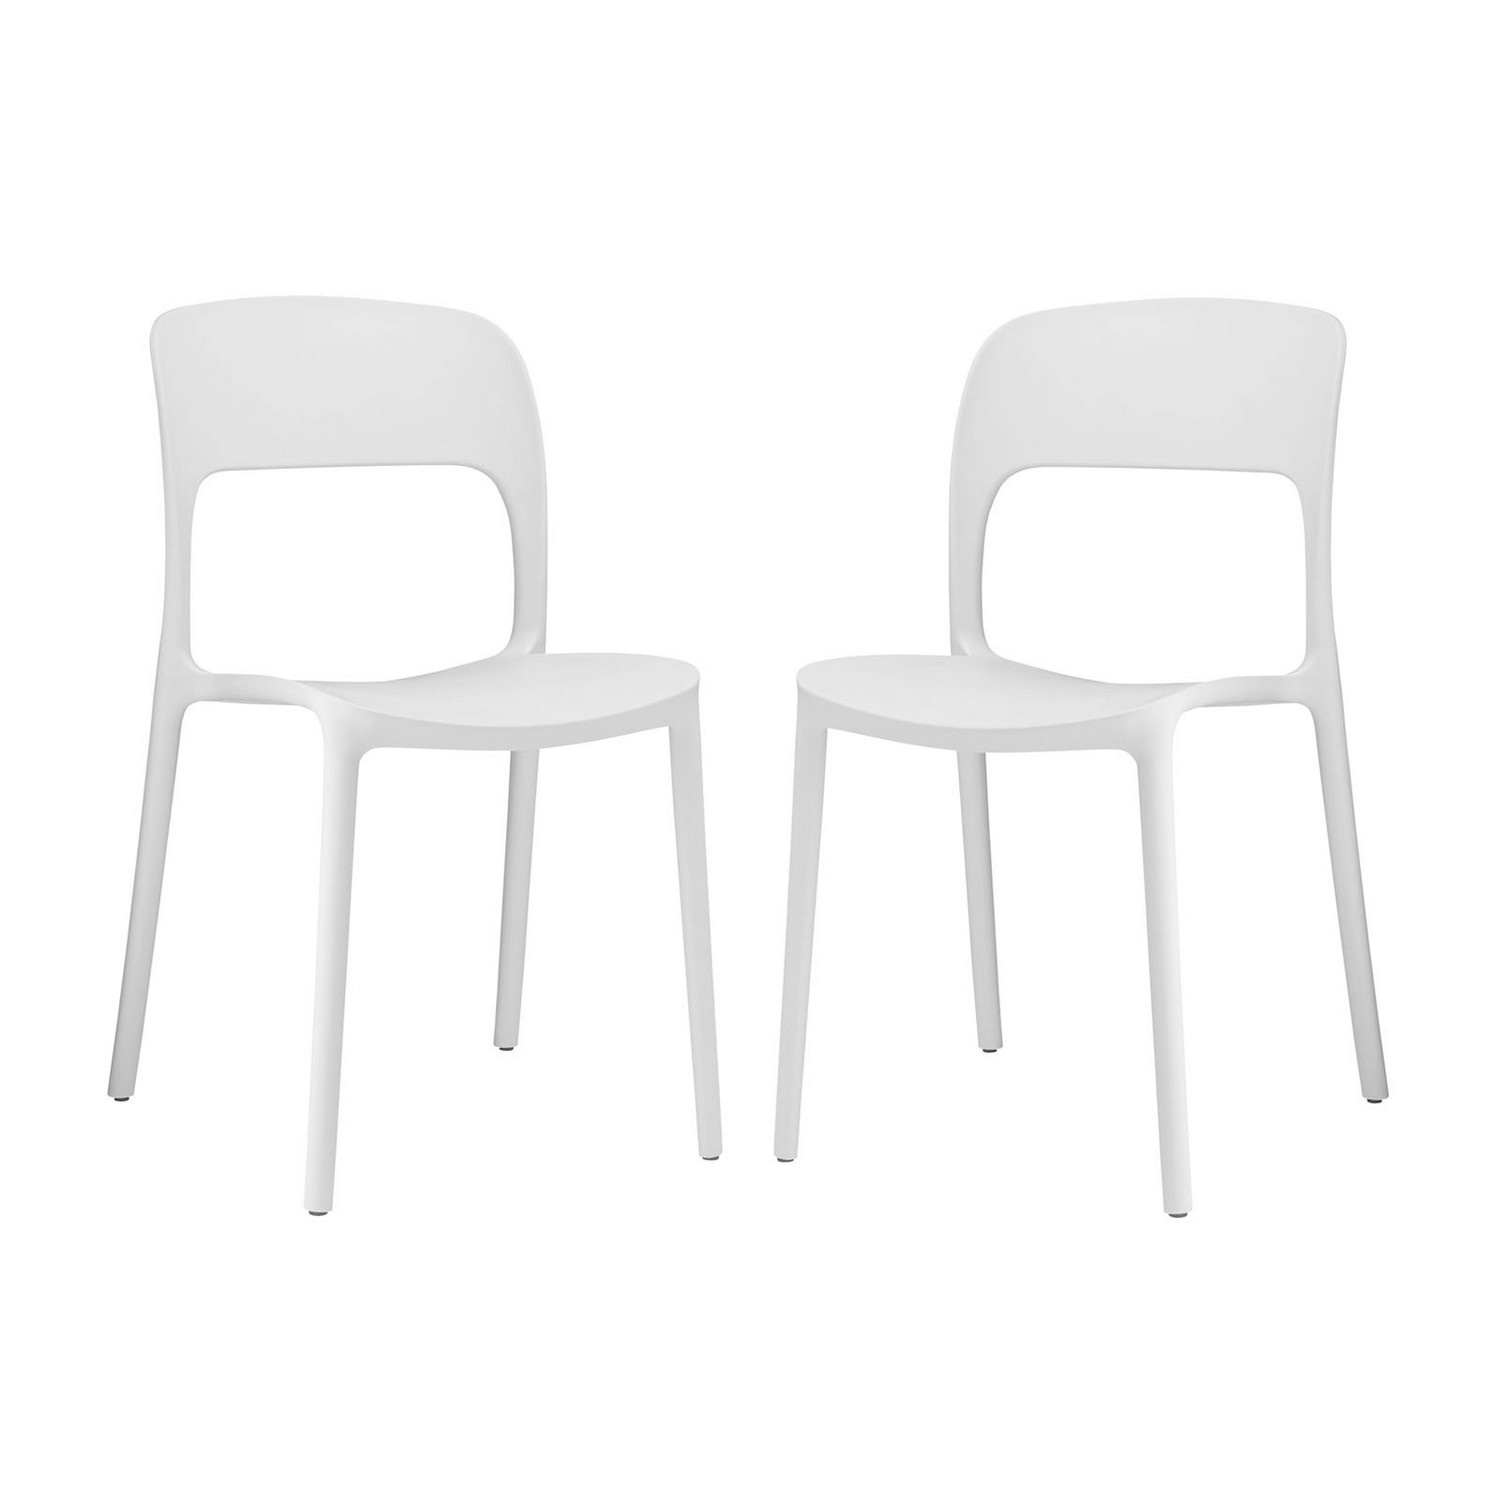 Modway Hop Dining Chair - Set of 2 - White